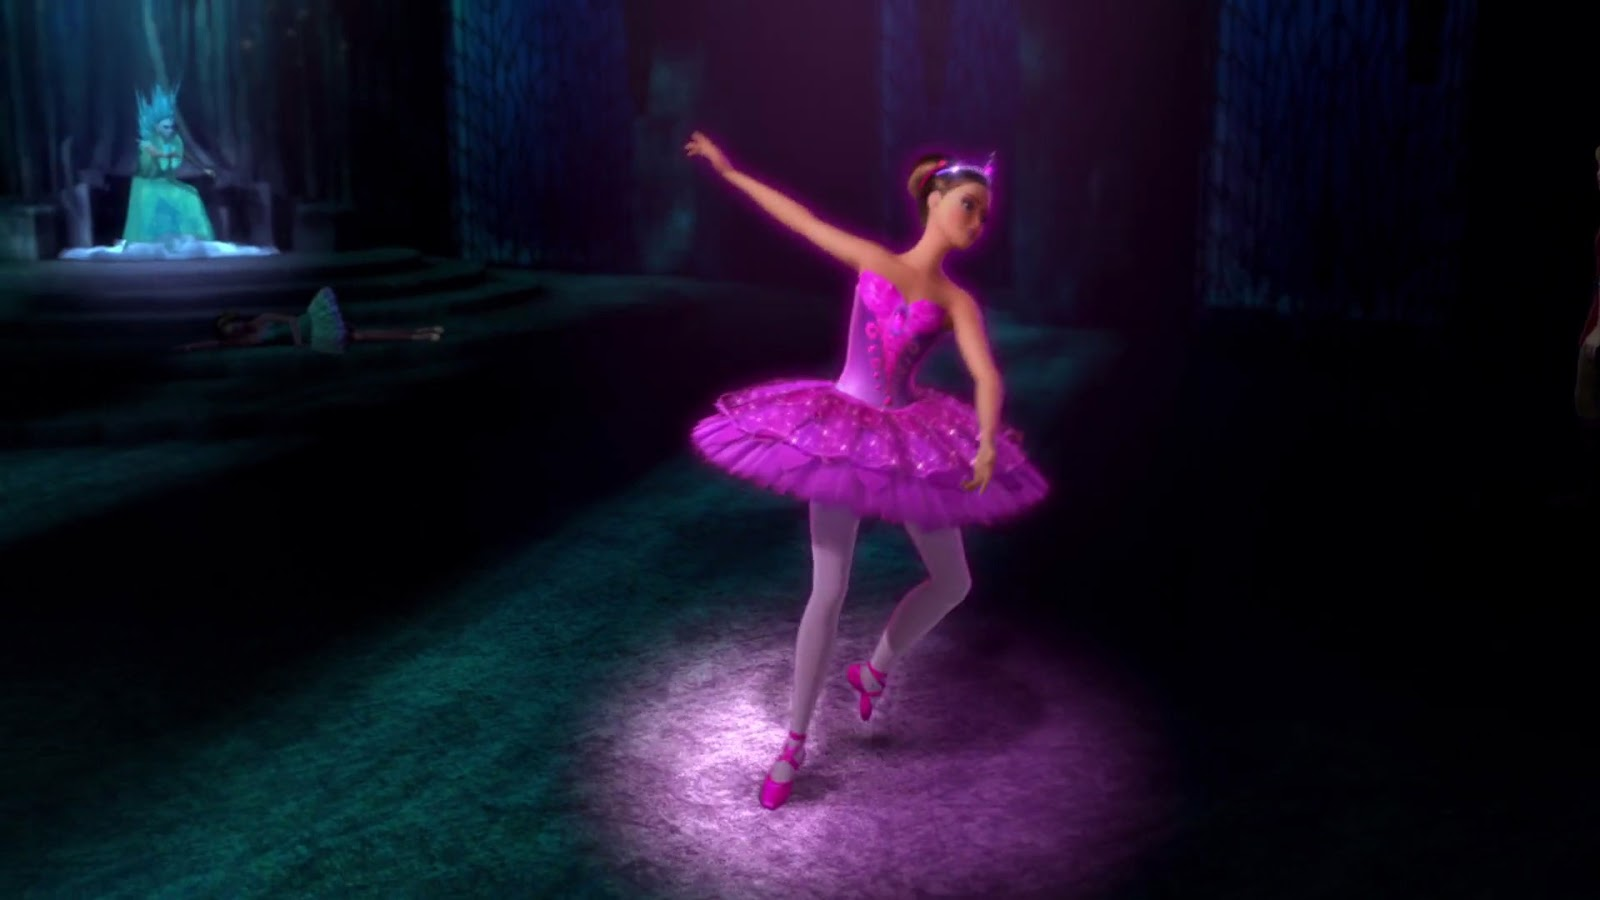 Barbie In The Pink Shoes Full Movie Online In Urdu: Online Cartoonz: Barbie In The Pink Shoes